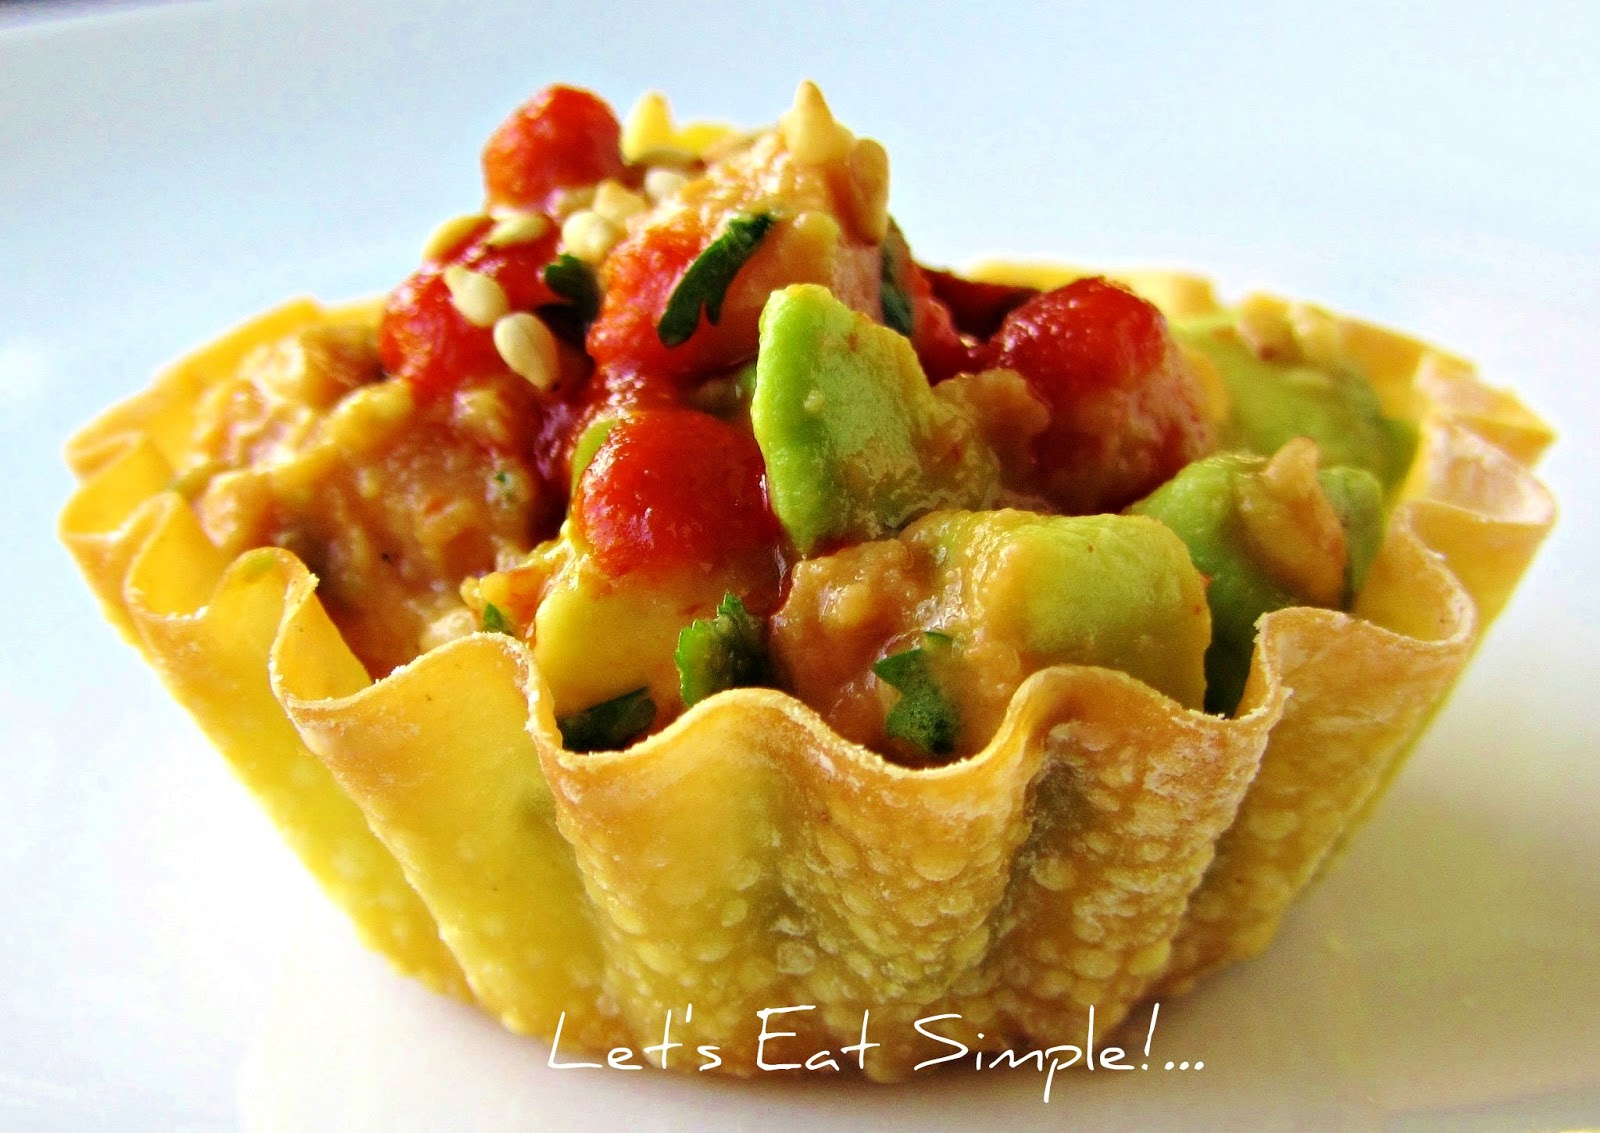 Let's eat.....simple!: Spicy Tuna & Avocado Ceviche Mini Cups